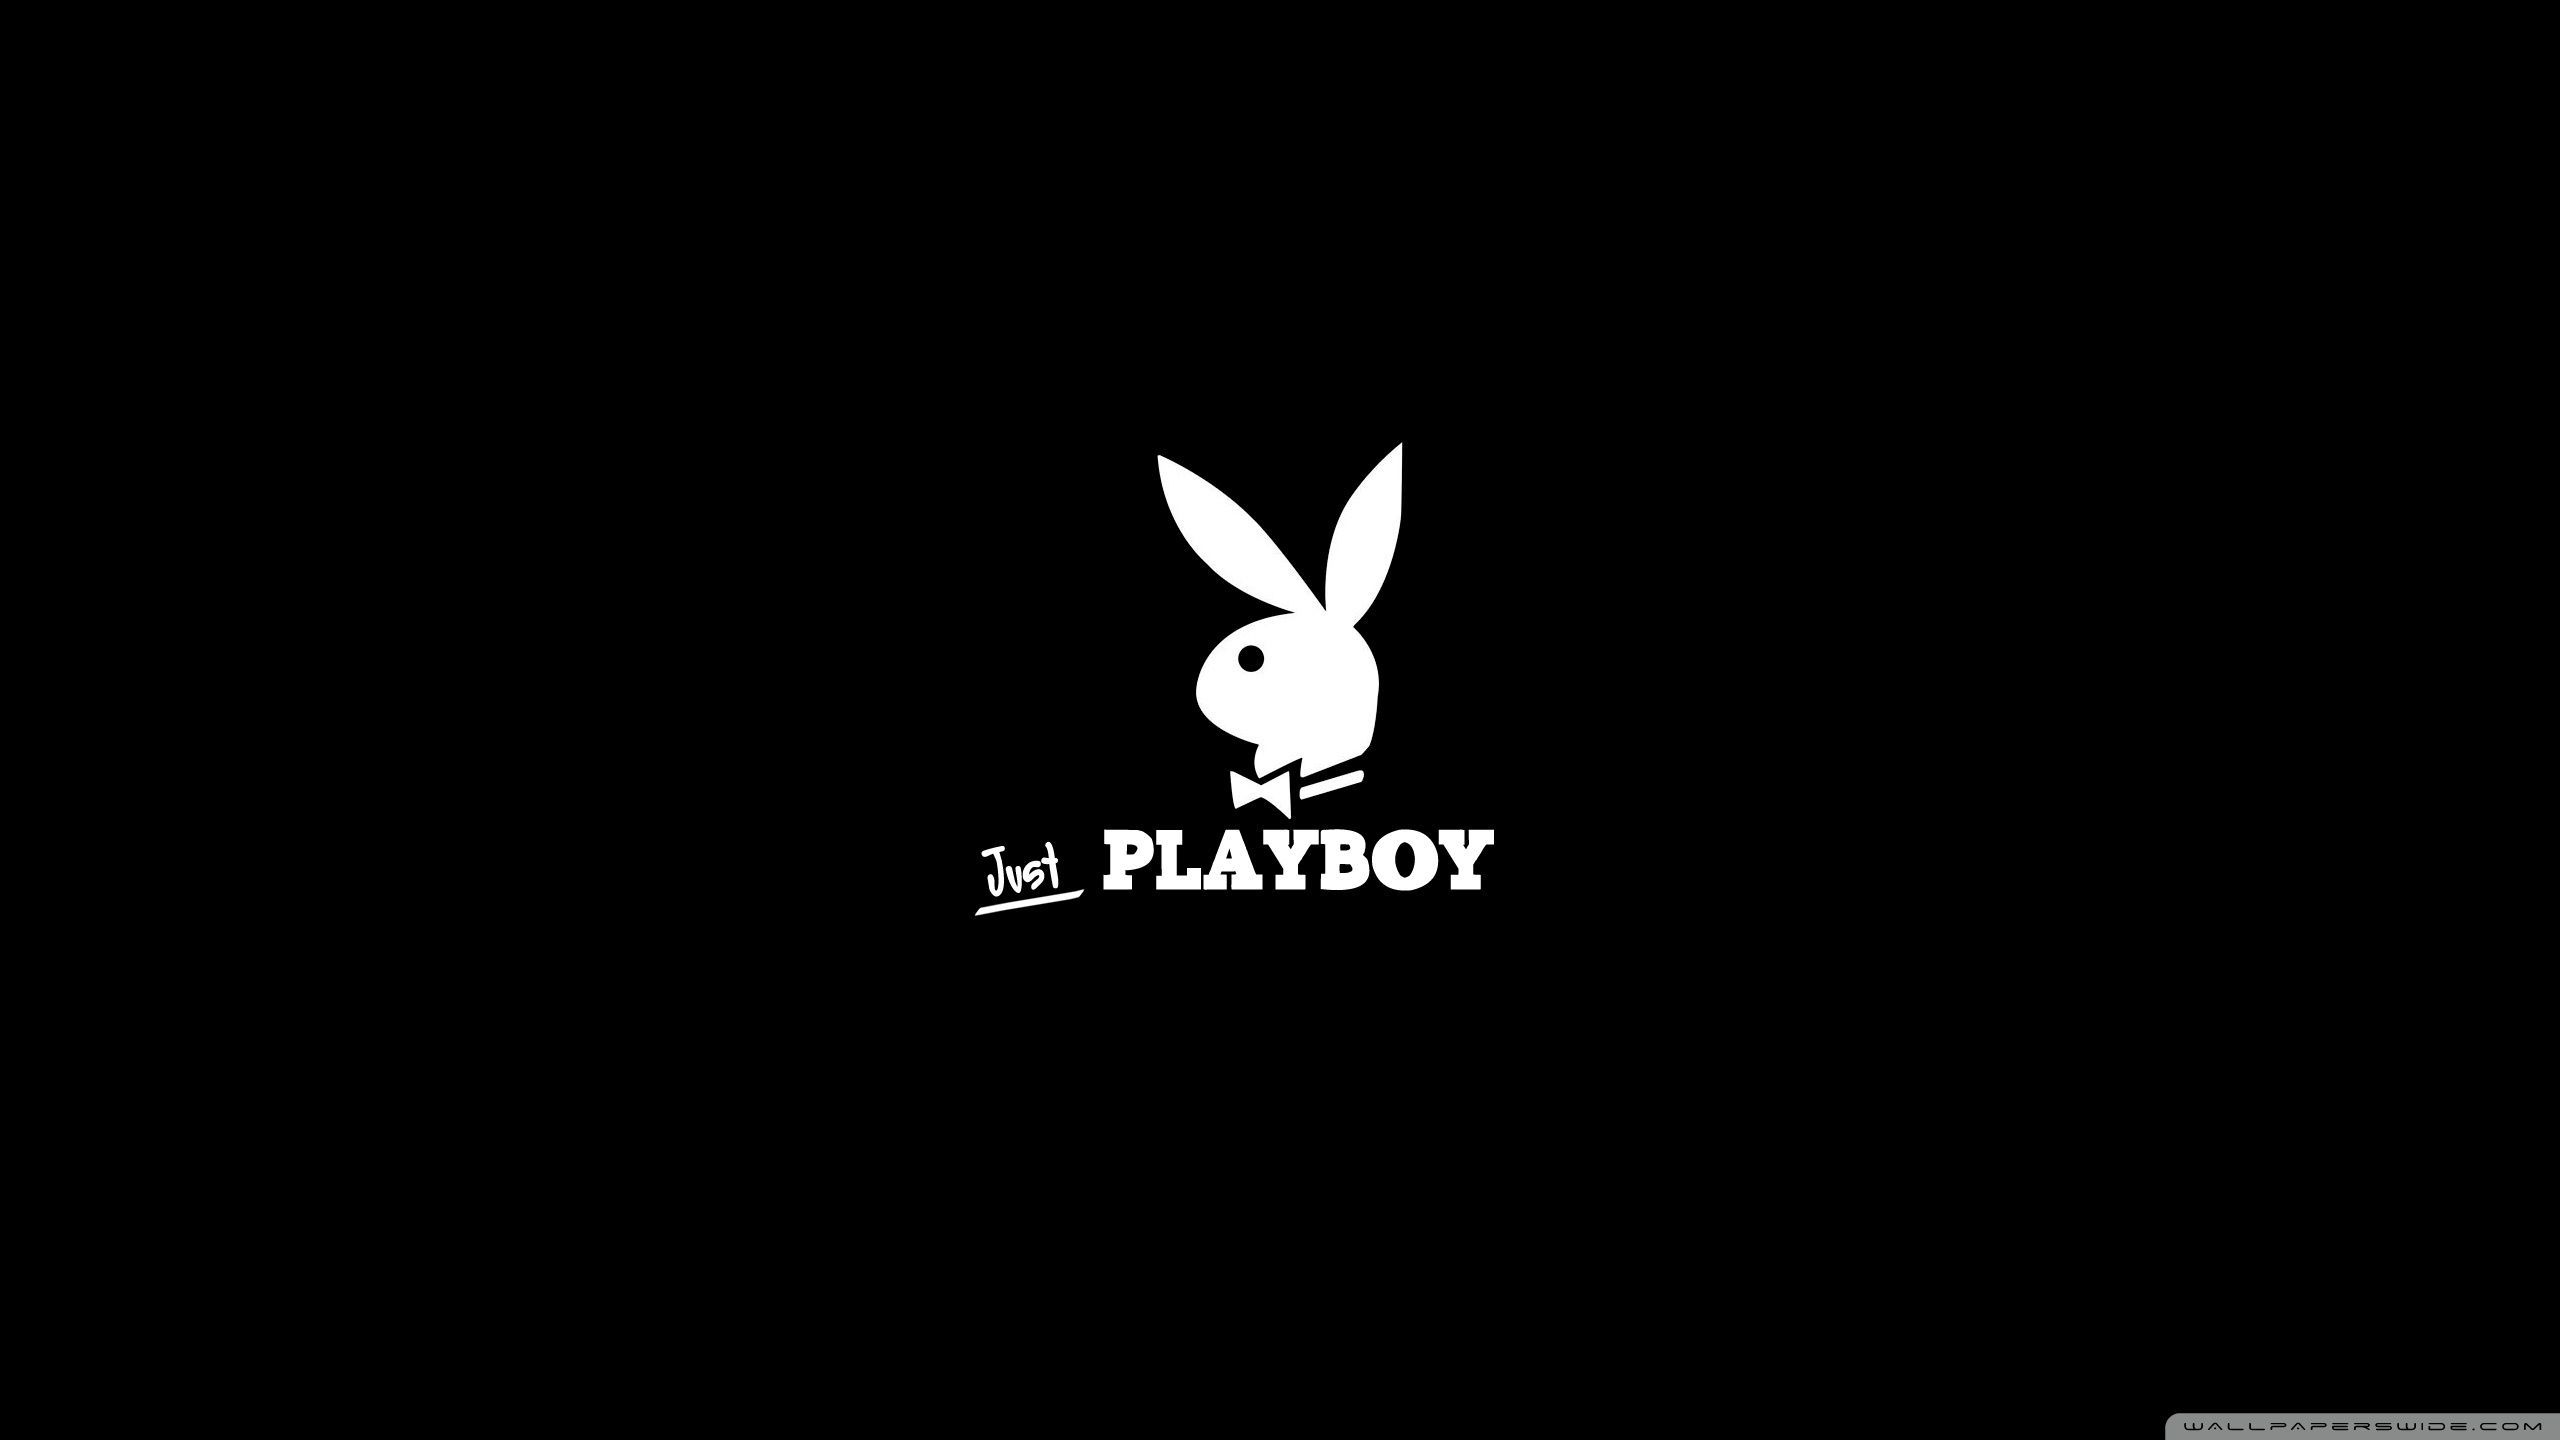 HD Playboy Wallpaper Download